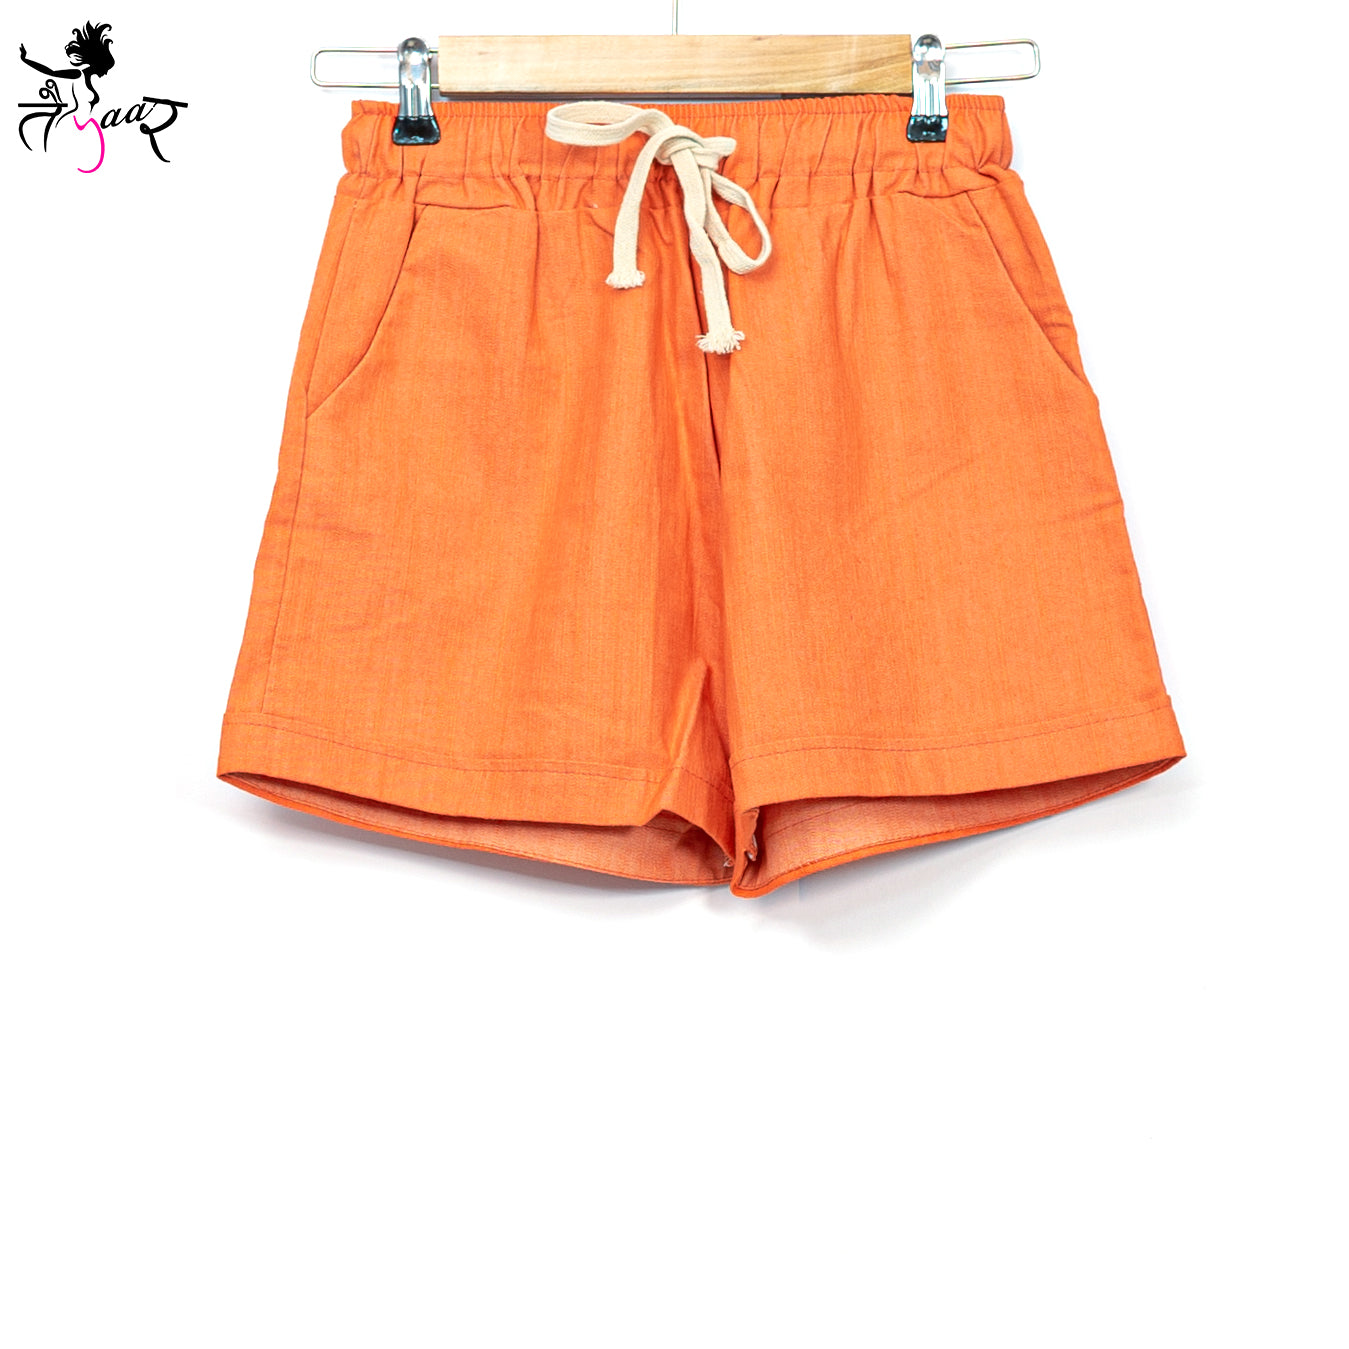 Orange cotton shorts with pockets